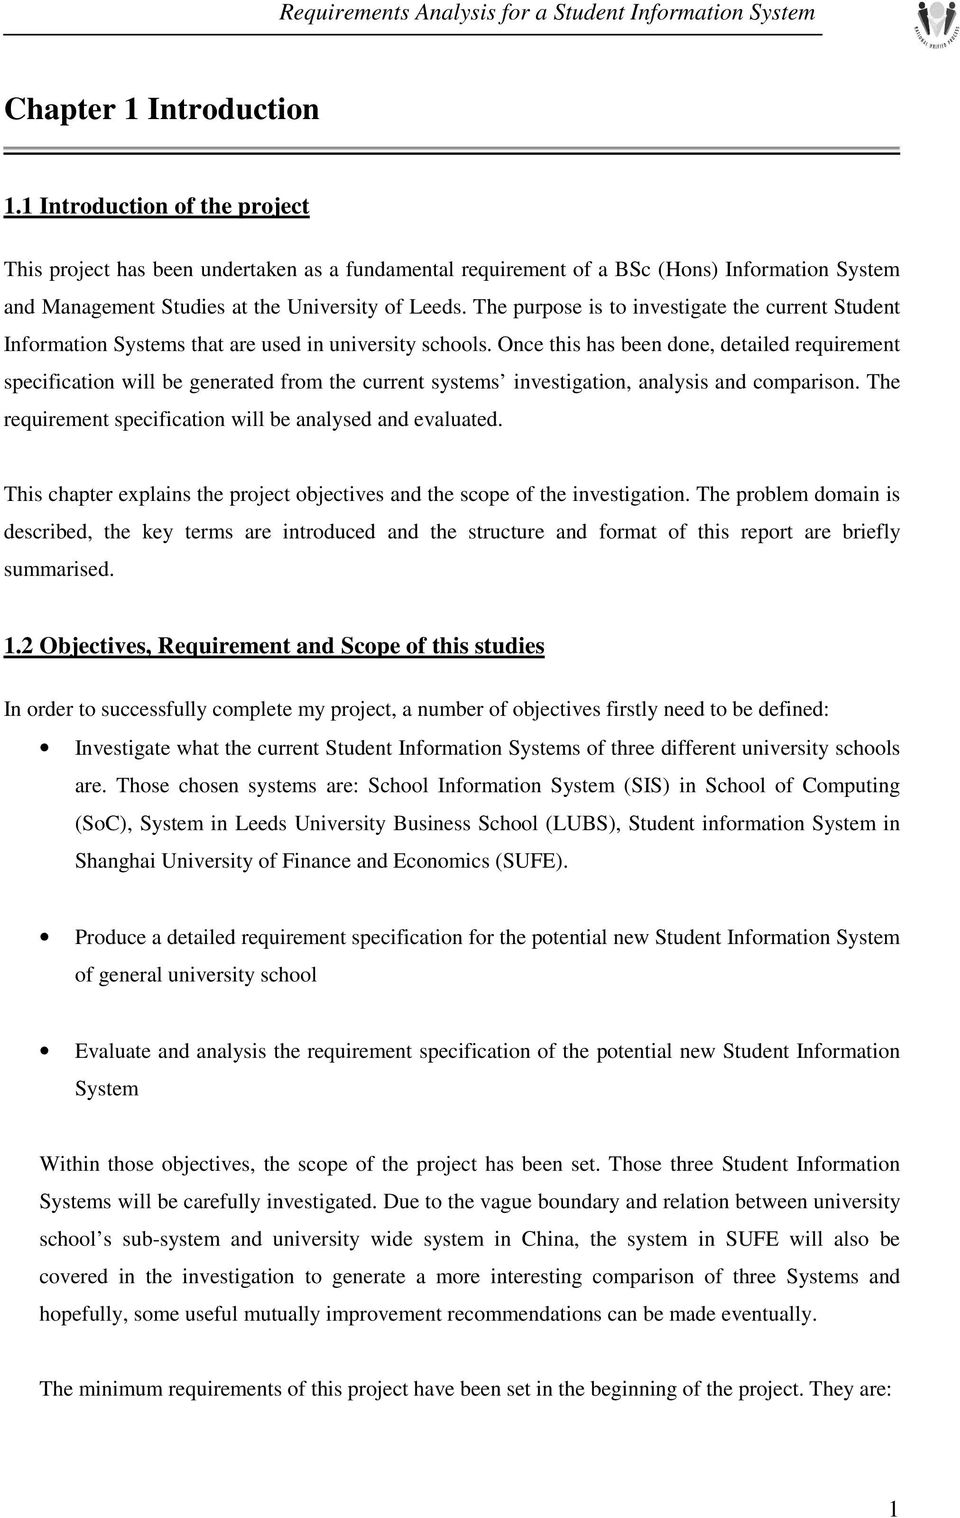 computerized enrollment system thesis documentation Thesis documentation about enrollment system pdf free download or read online to books thesis documentation about computerized thesis enrollment system.